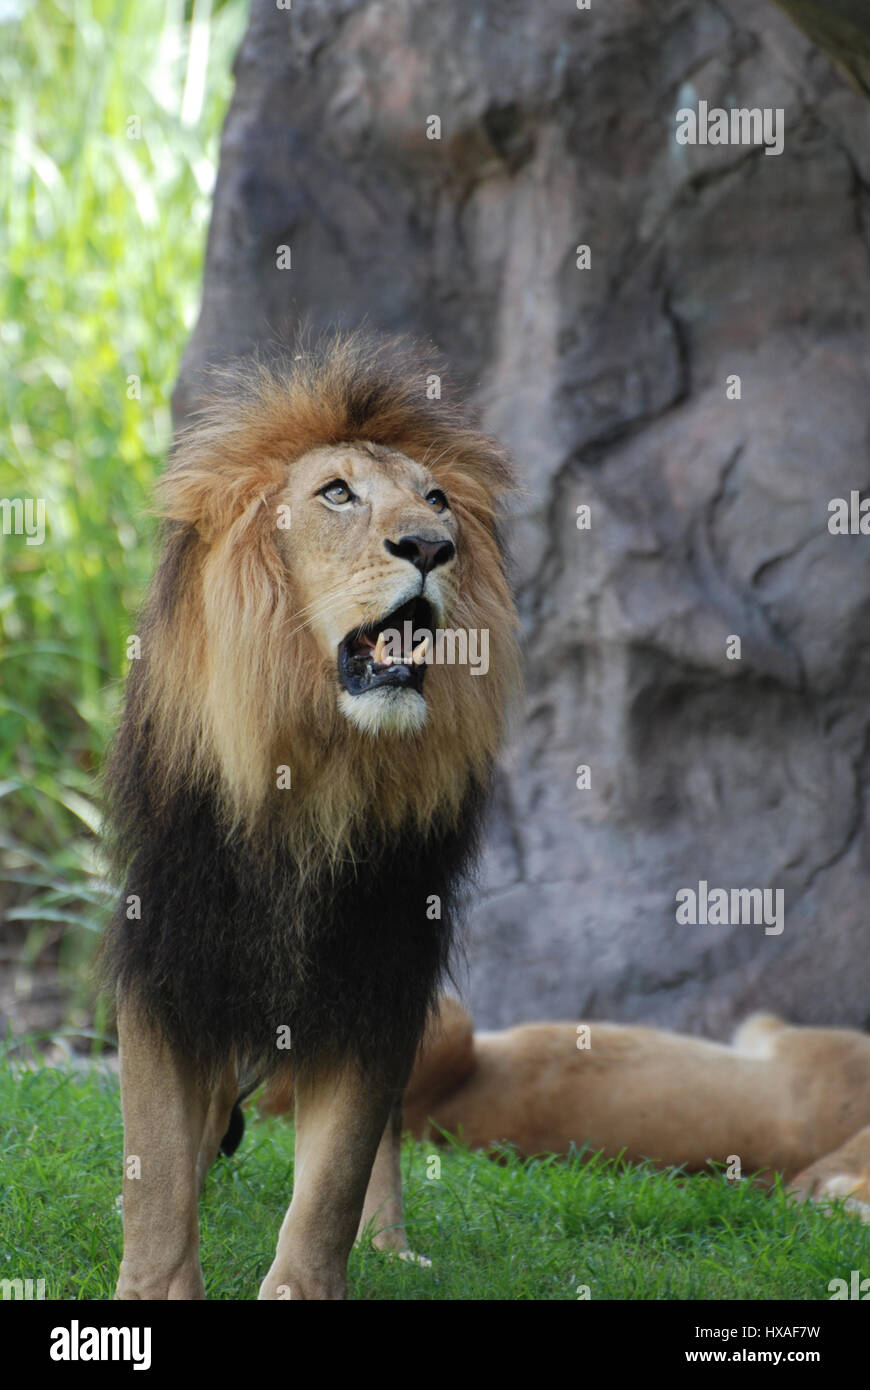 Lion showing his teeth while he growls and paces. - Stock Image